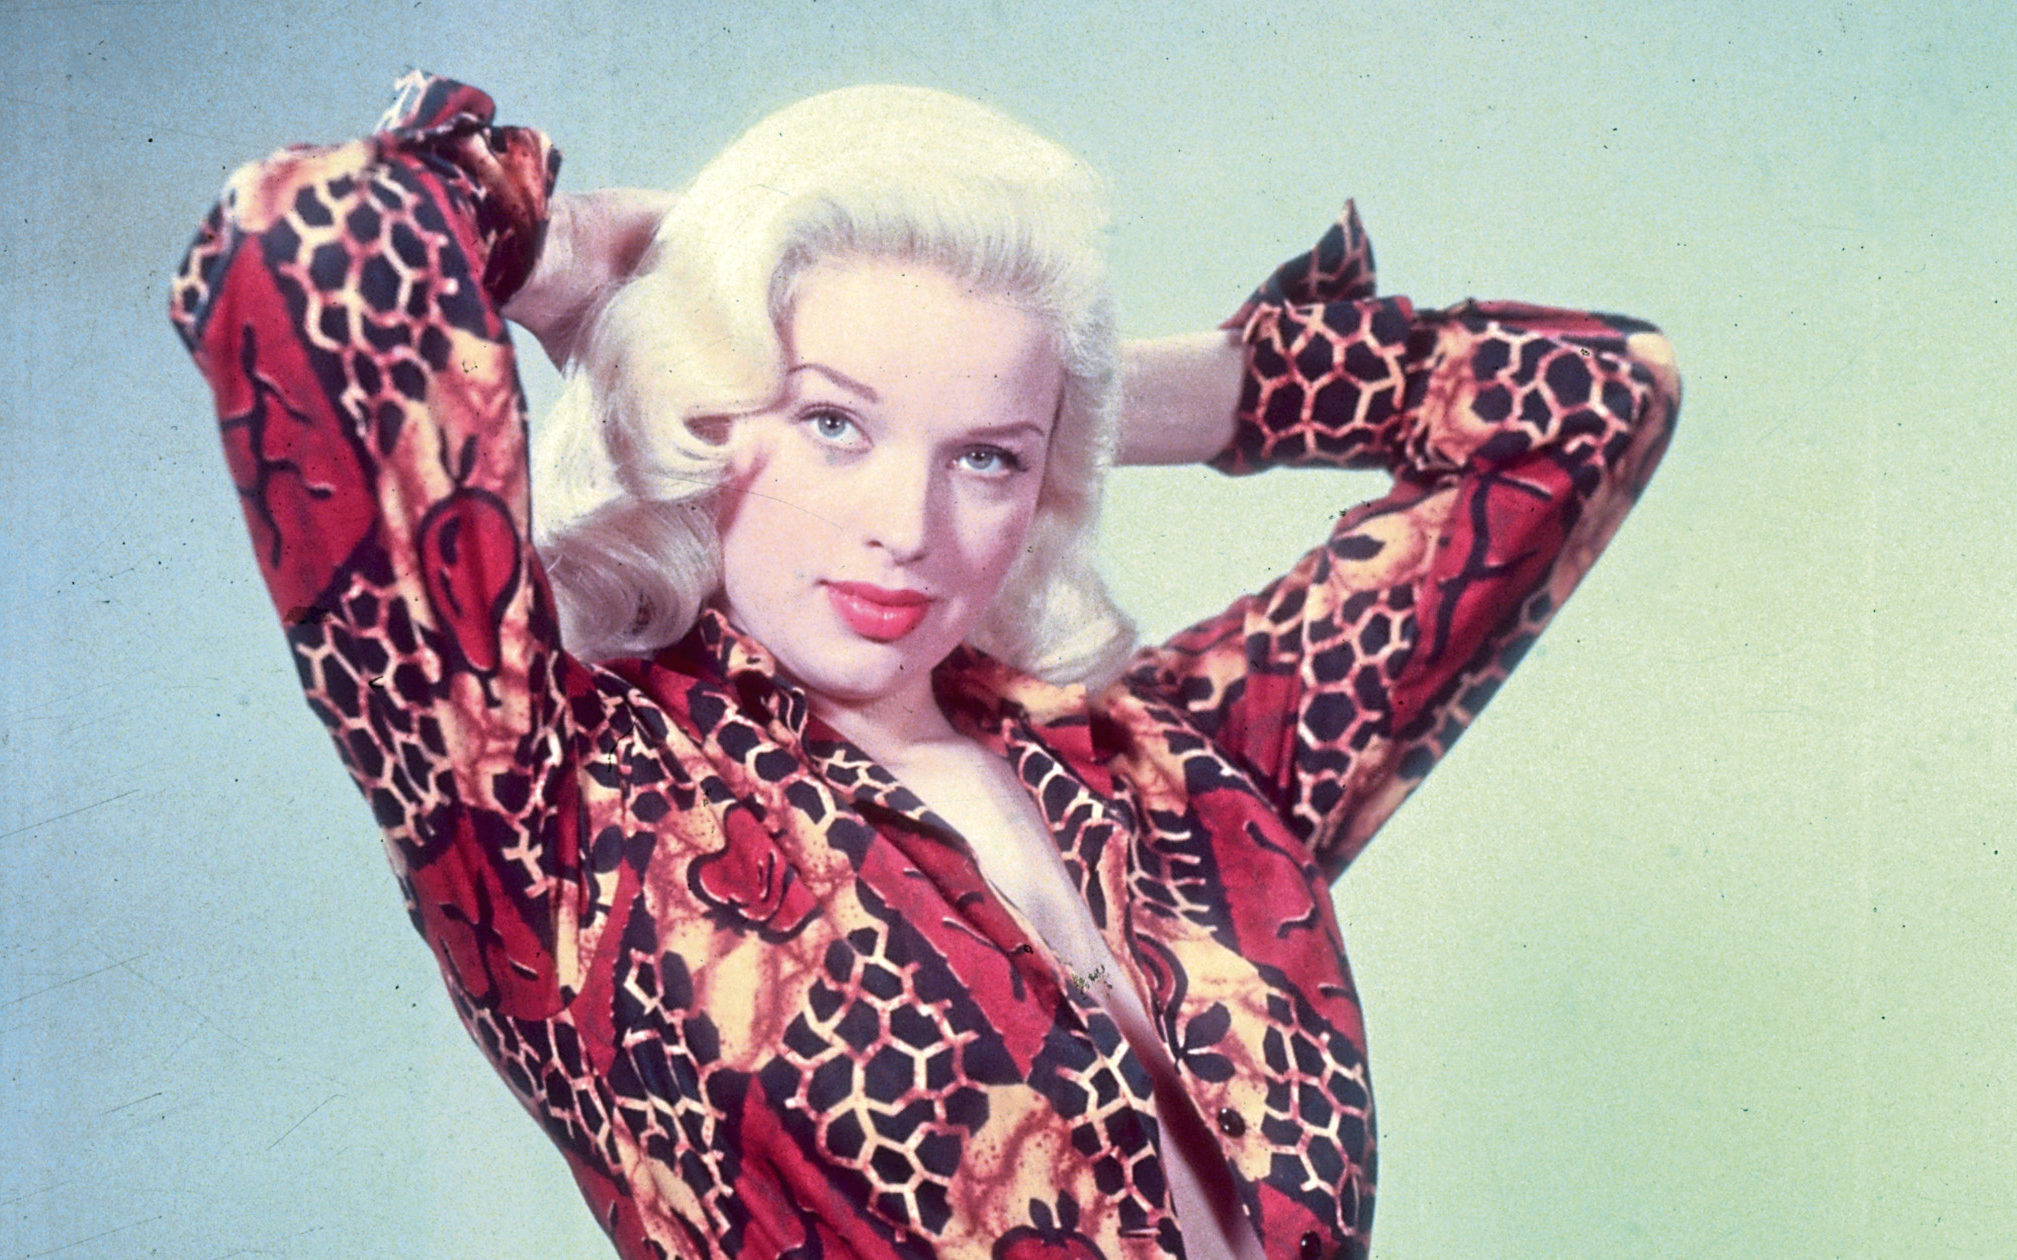 English film star Diana Dors in 1955 (Baron/Getty Images)